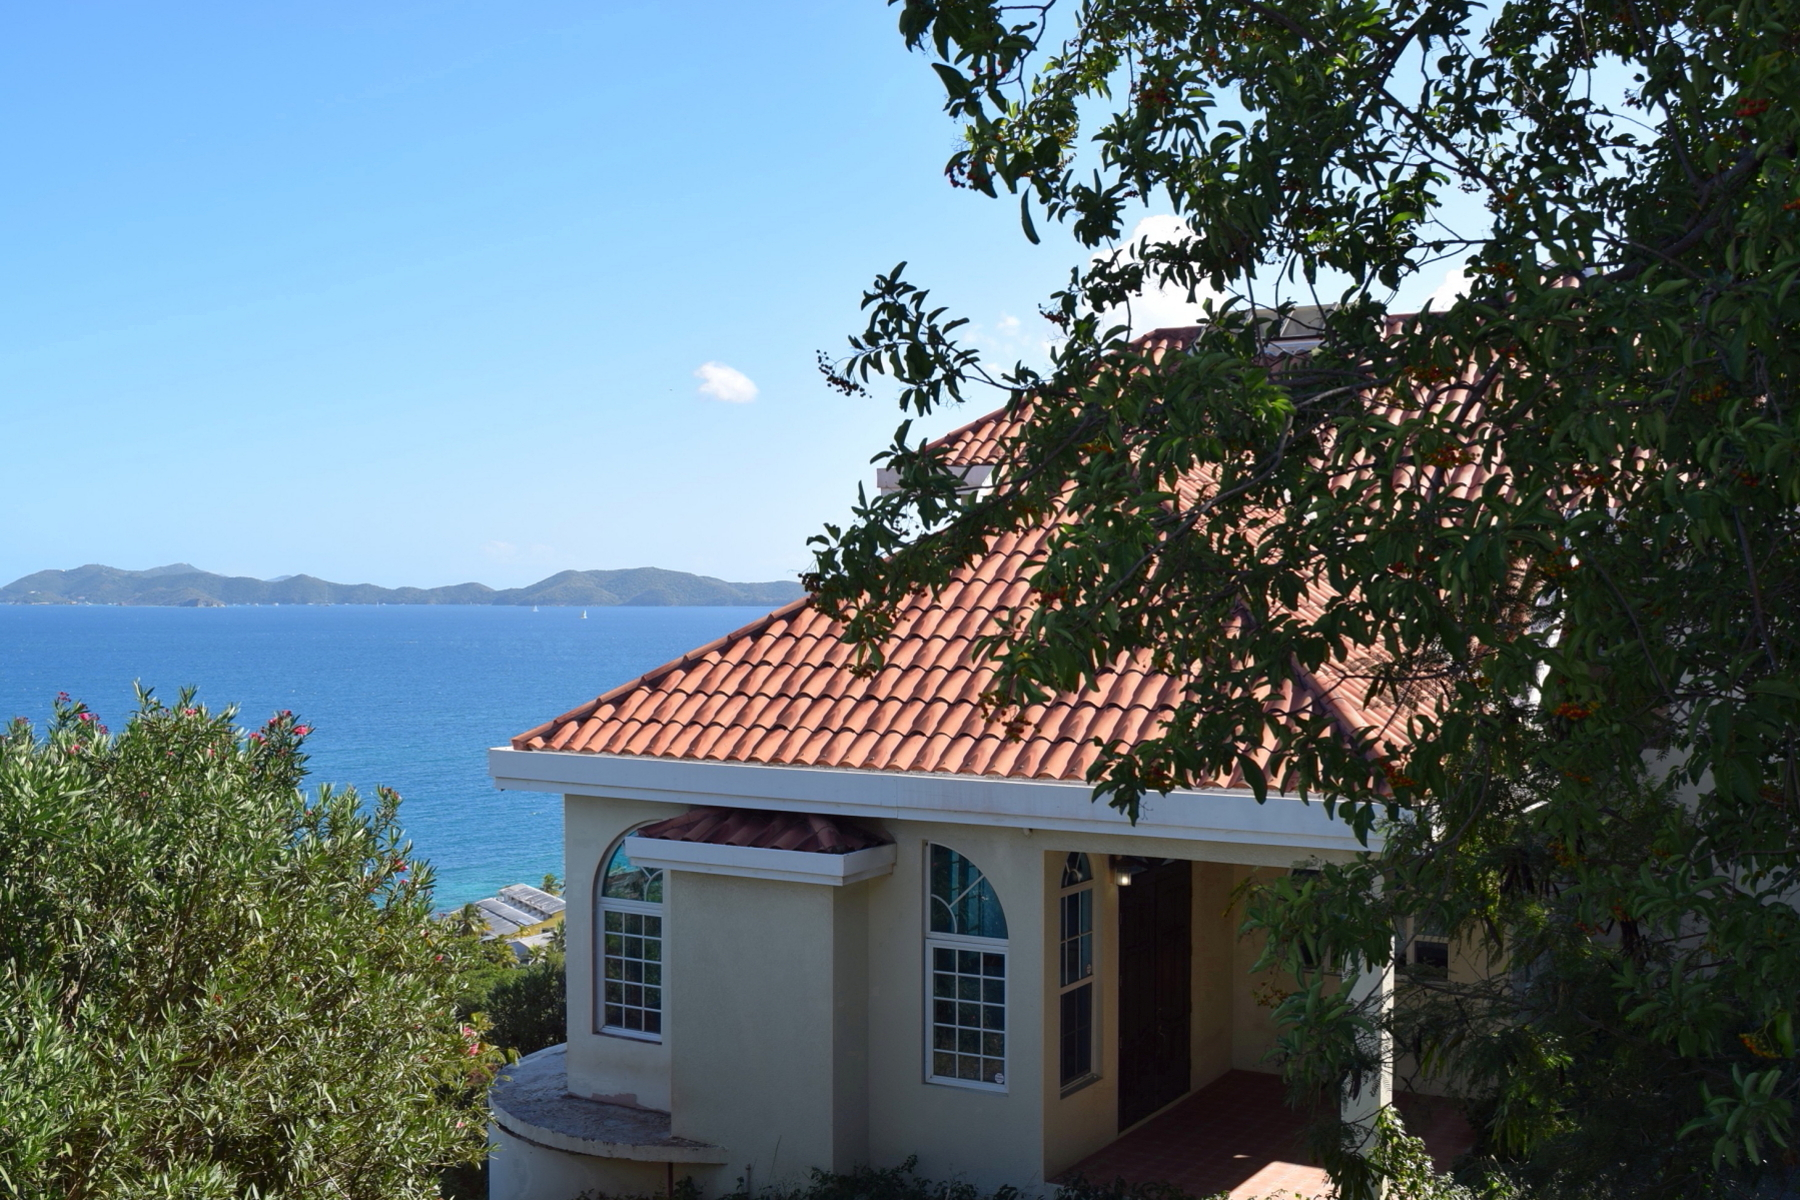 Single Family Home for Sale at Channel Island Breezes Other Tortola, Tortola British Virgin Islands